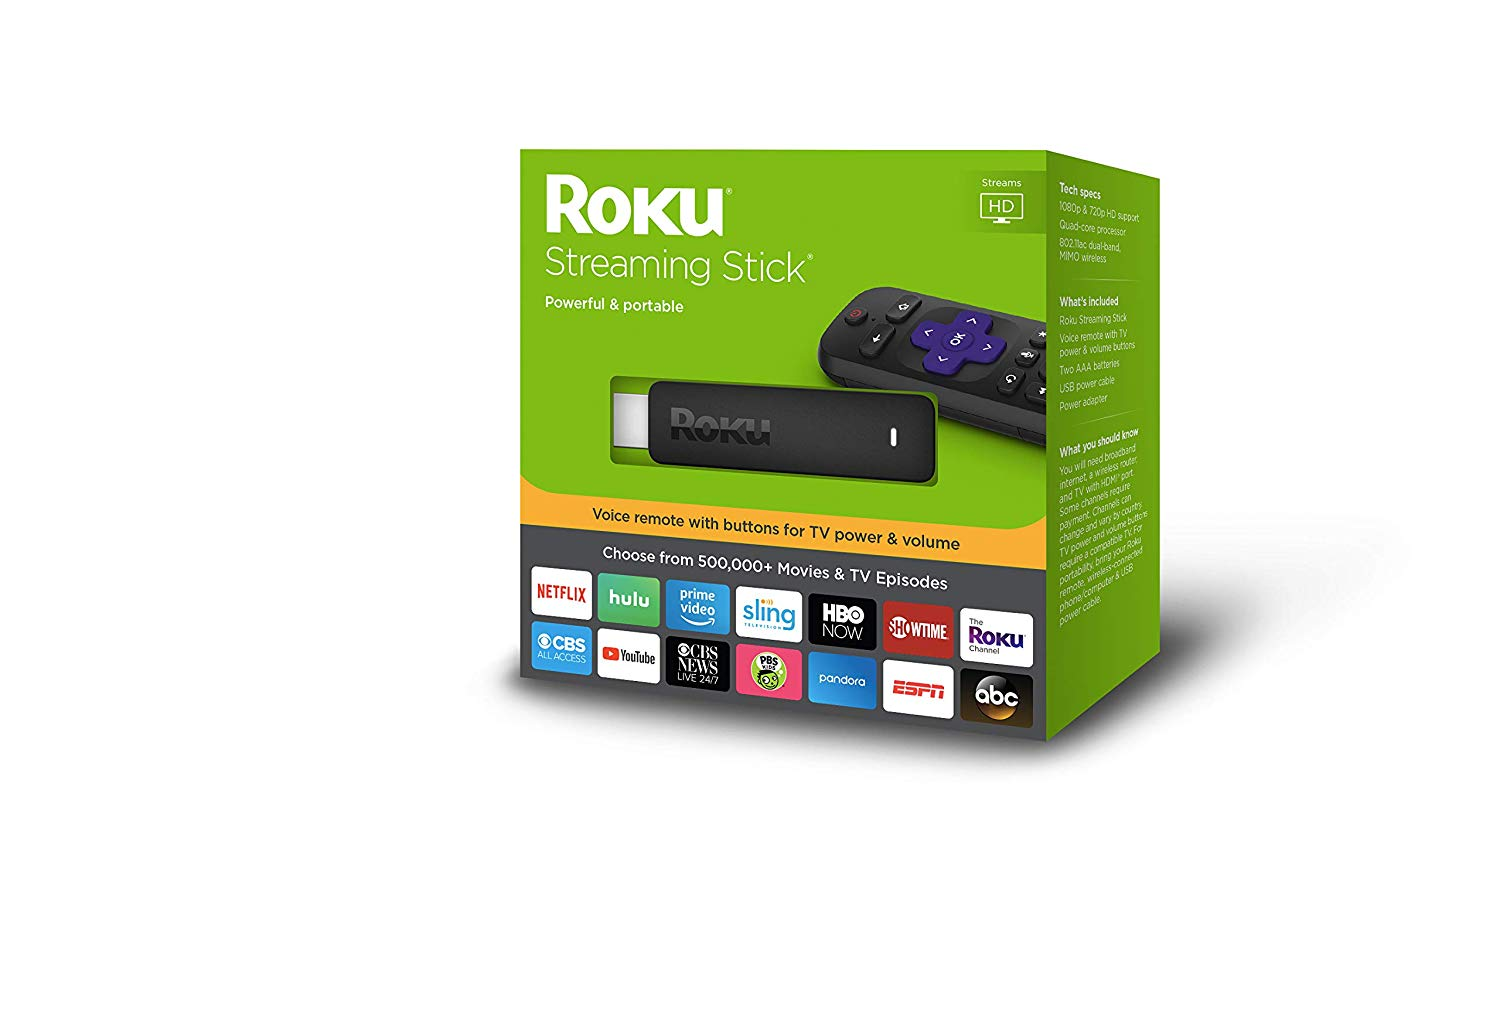 Roku Streaming Stick with voice remote 2017 Model (Model 3800) -  Izzudrecoba Store